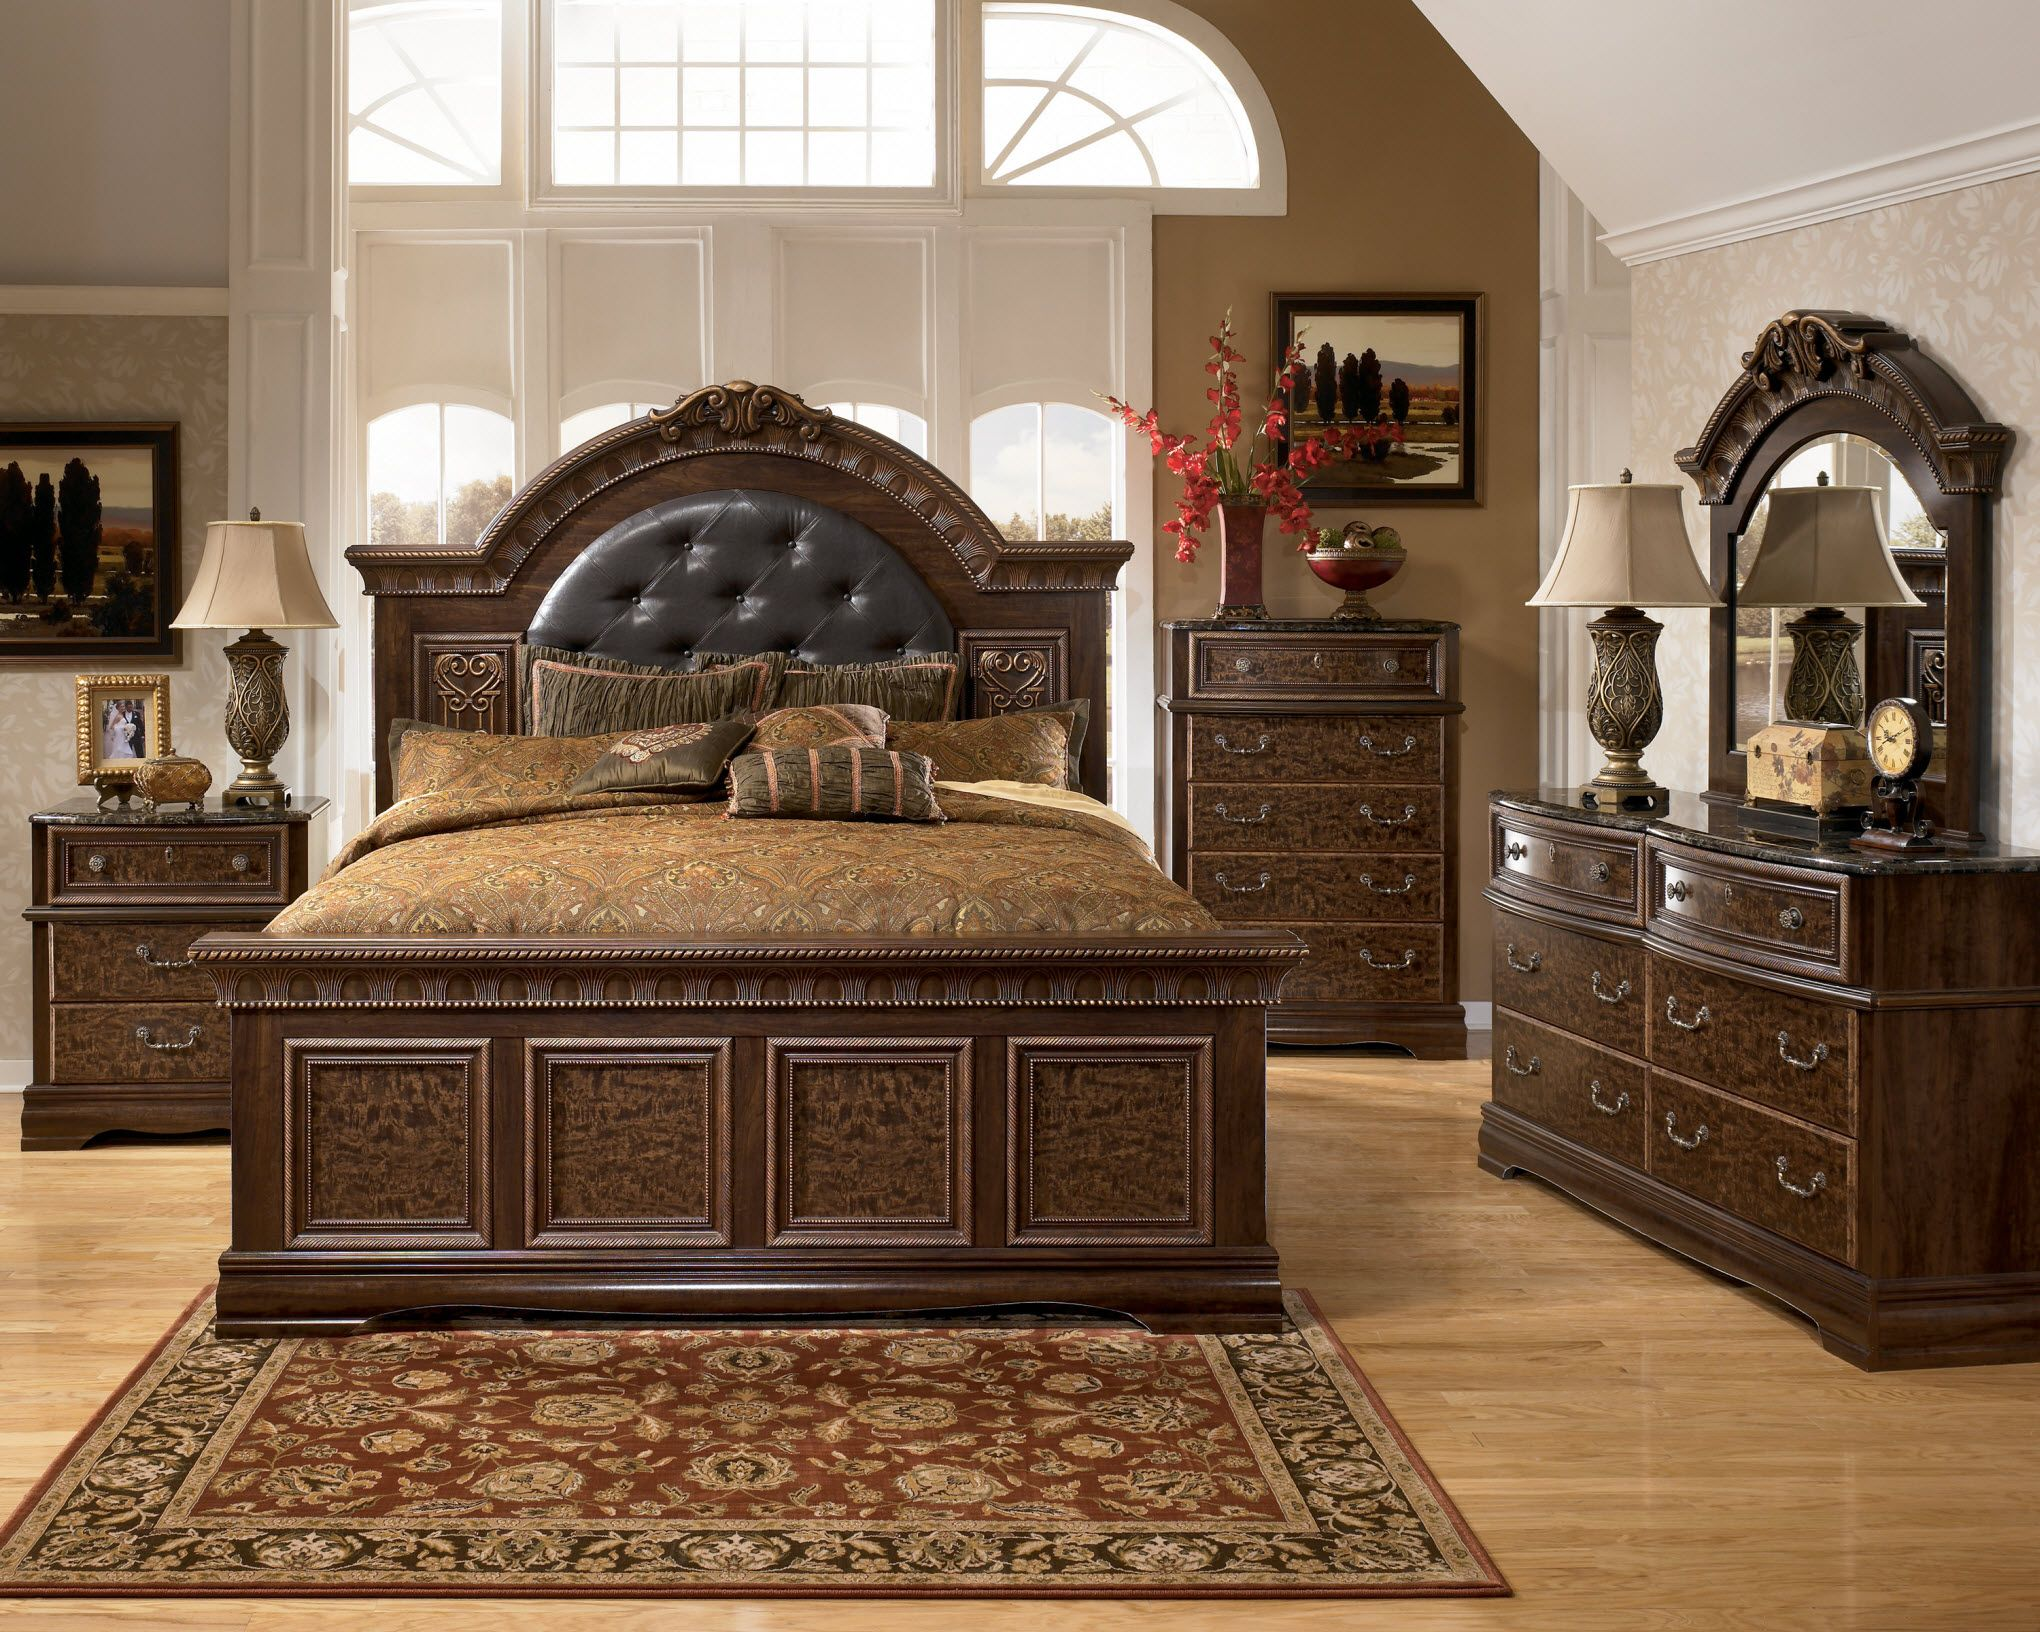 Wooden Bedroom Furniture Sets Bed And Bedroom Furniture Sets Image4 Bedroom Furniture